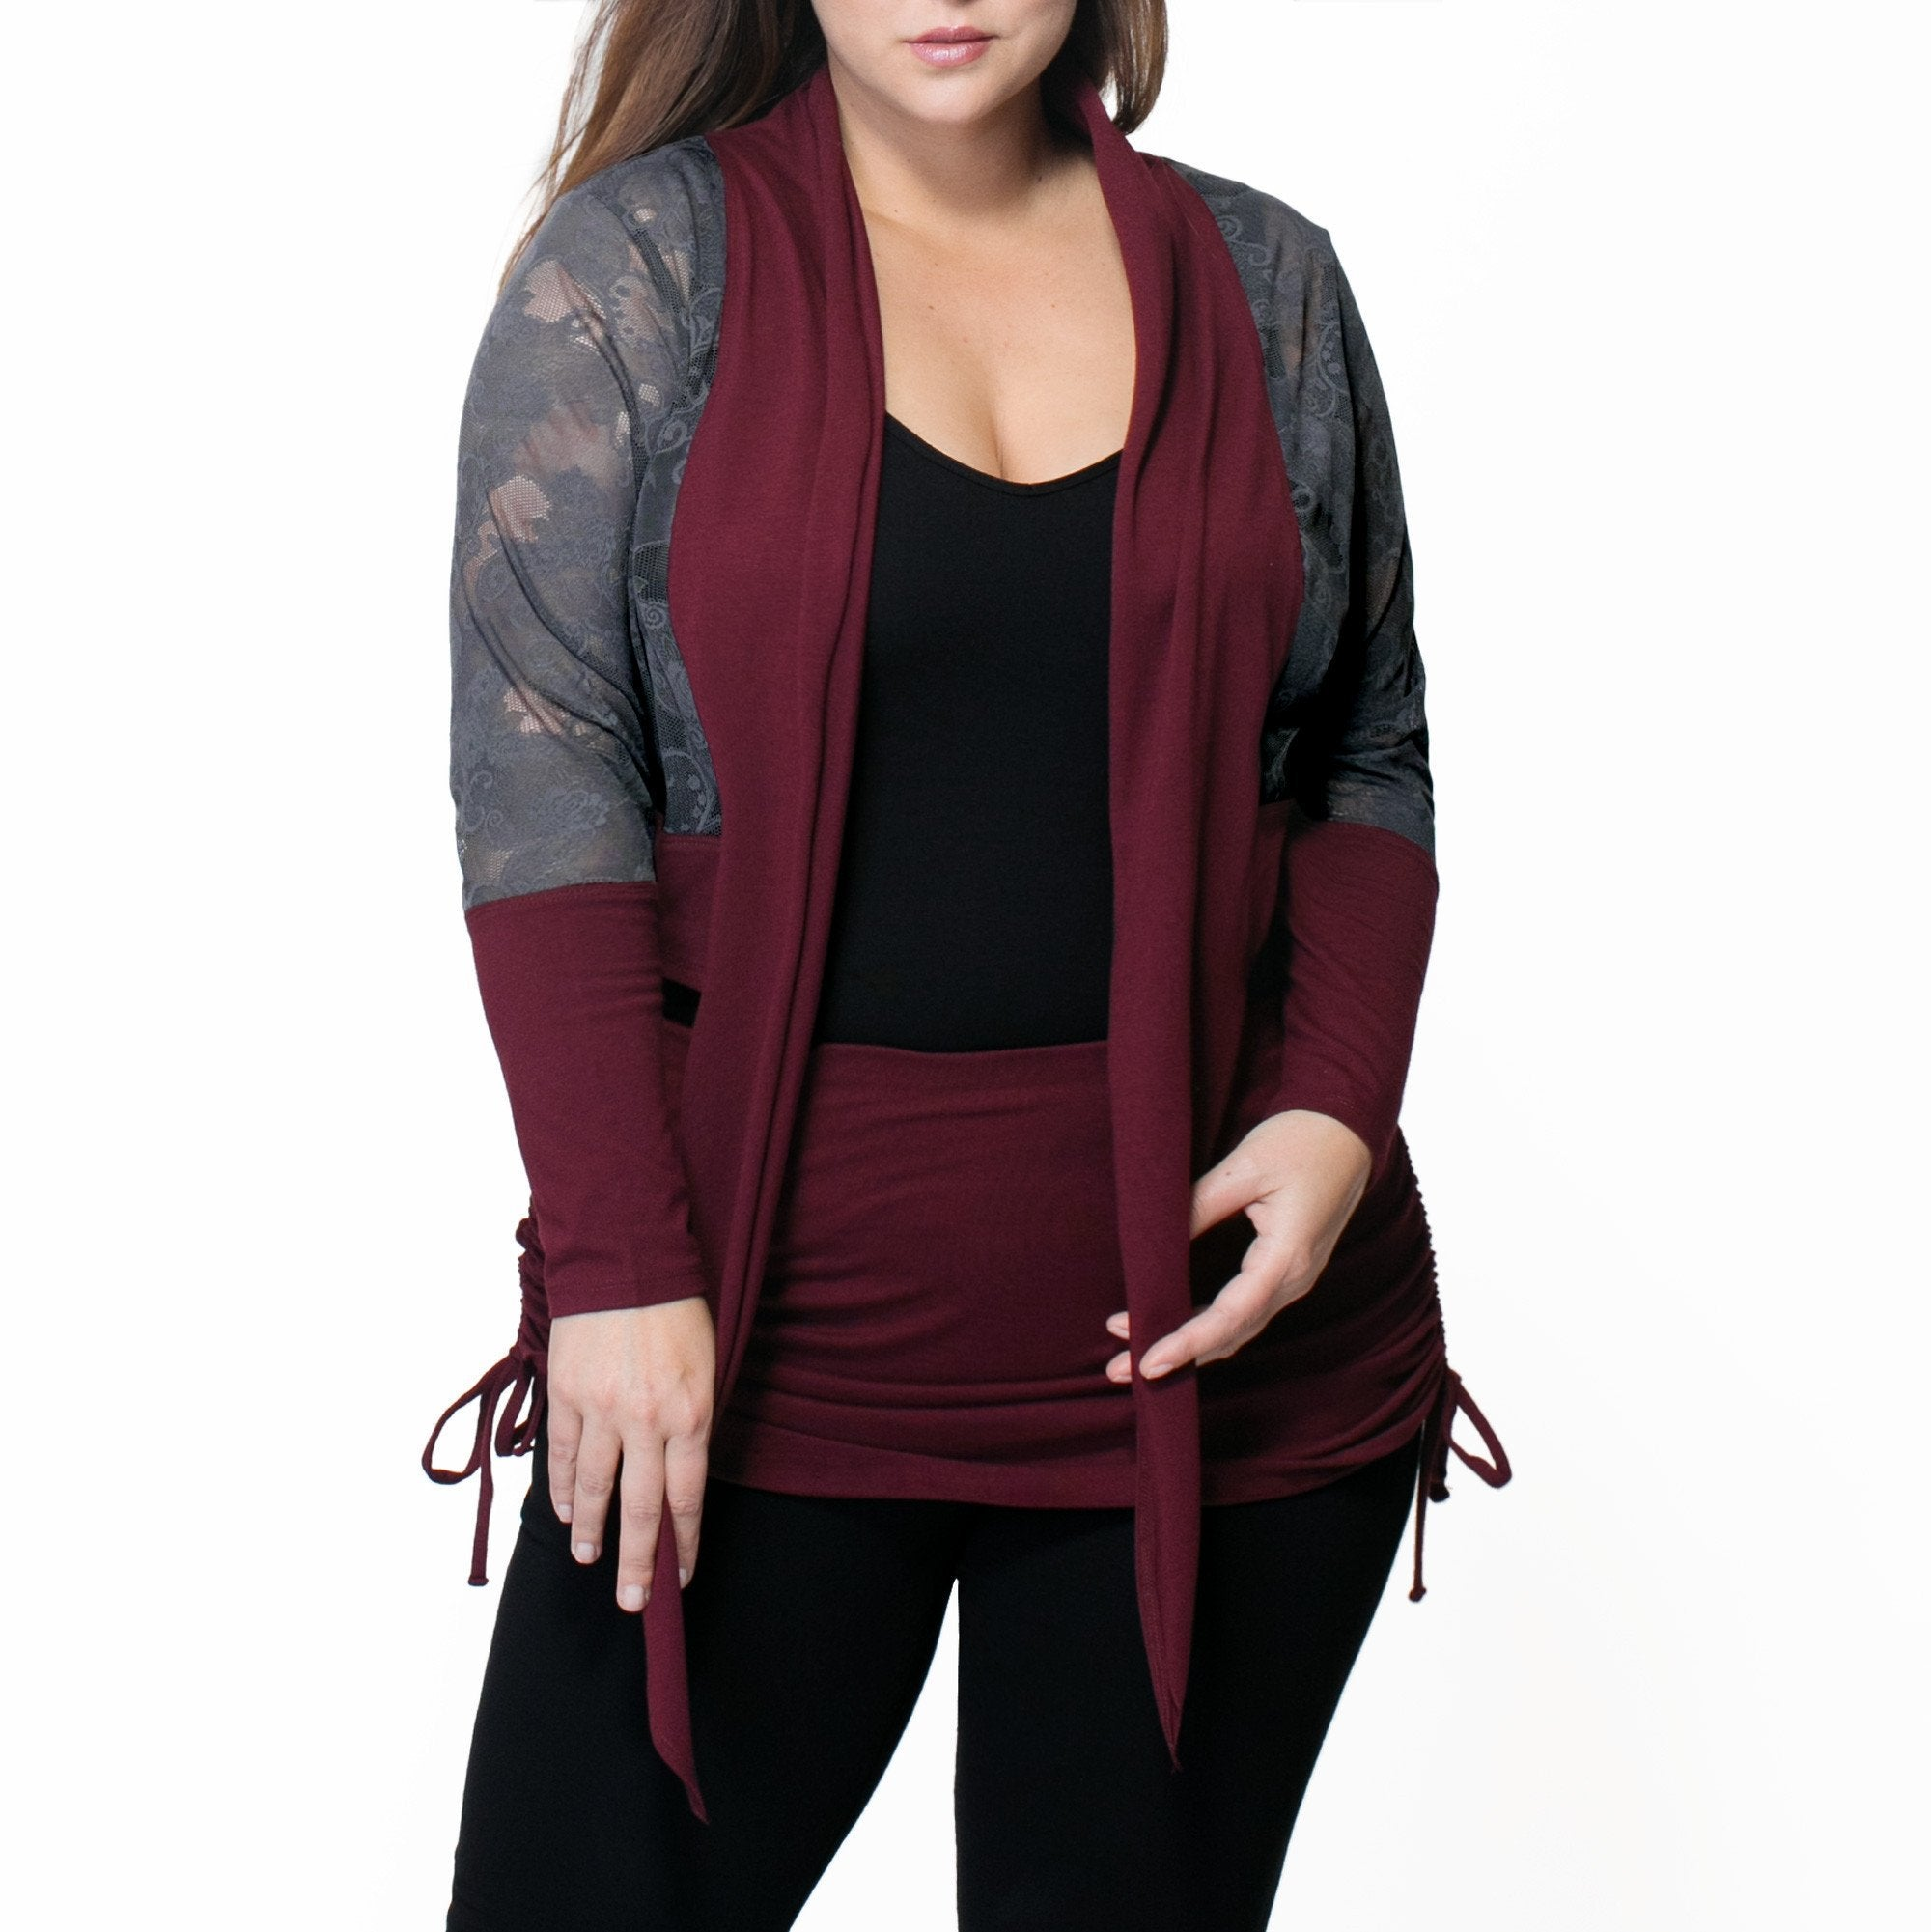 Whitney Bolero Cardigan - Rainbeau Curves, 14/16 / Black, activewear, athleisure, fitness, workout, gym, performance, womens, ladies, plus size, curvy, full figured, spandex, cotton, polyester - 1